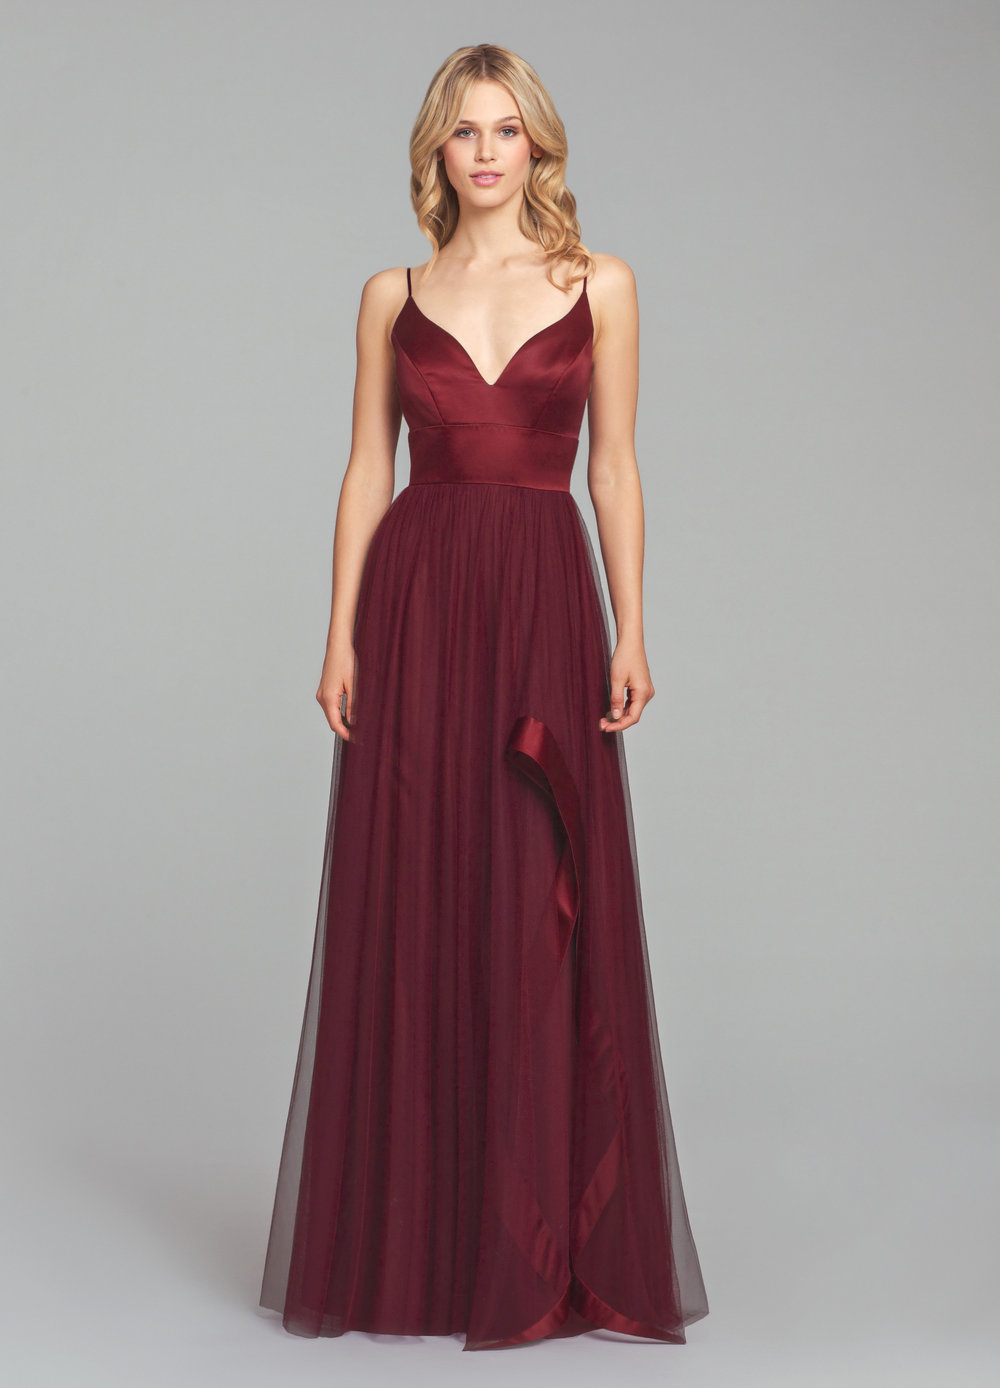 hayley-paige-occasions-bridesmaids-fall-2018-style-5856.jpg